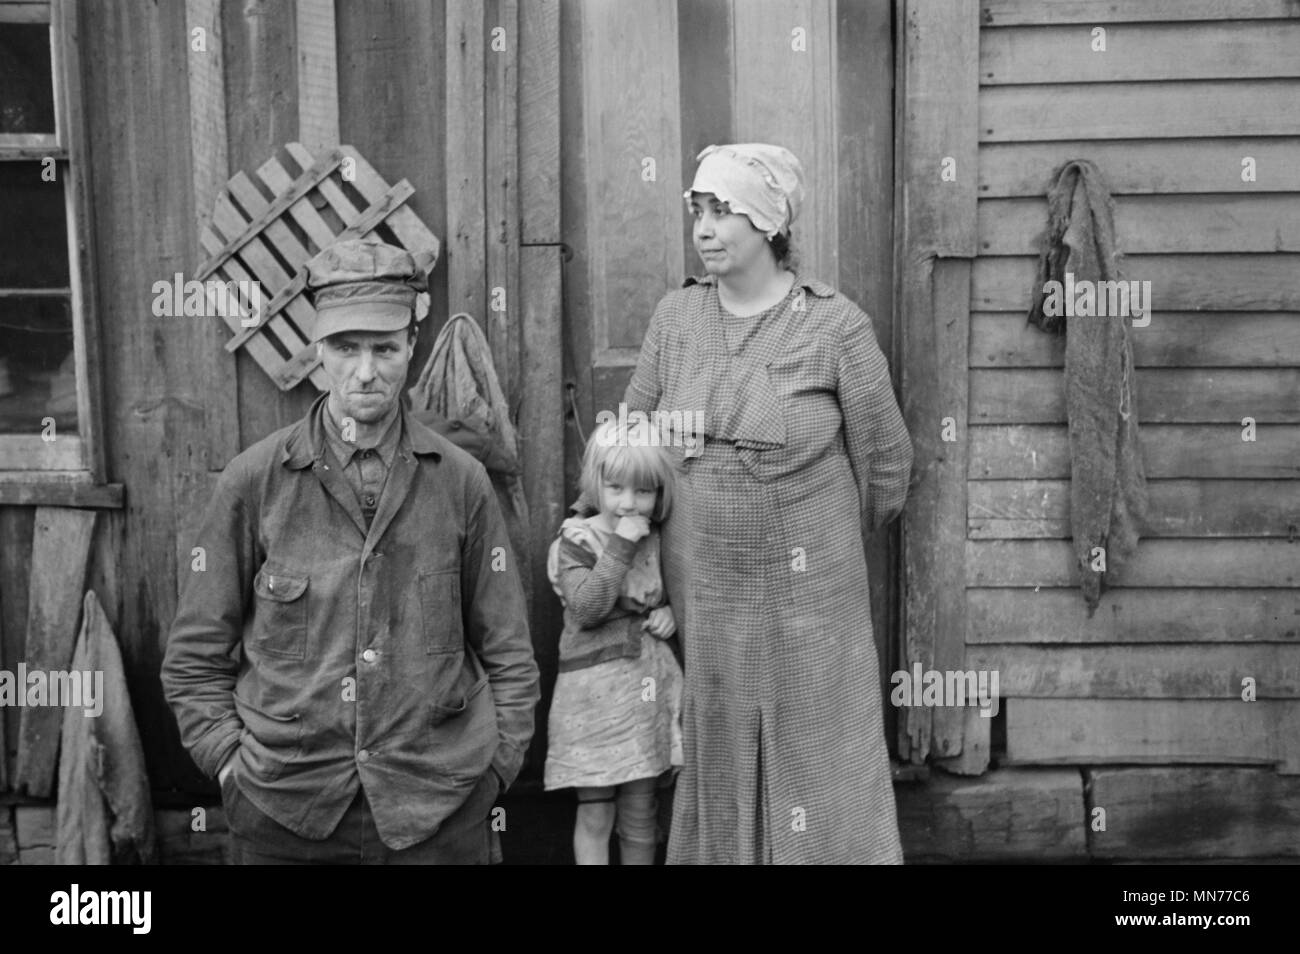 Rehabilitation Client with Family, Jackson County, Ohio, USA, Theodore Jung for U.S. Resettlement Administration, April 1936 - Stock Image